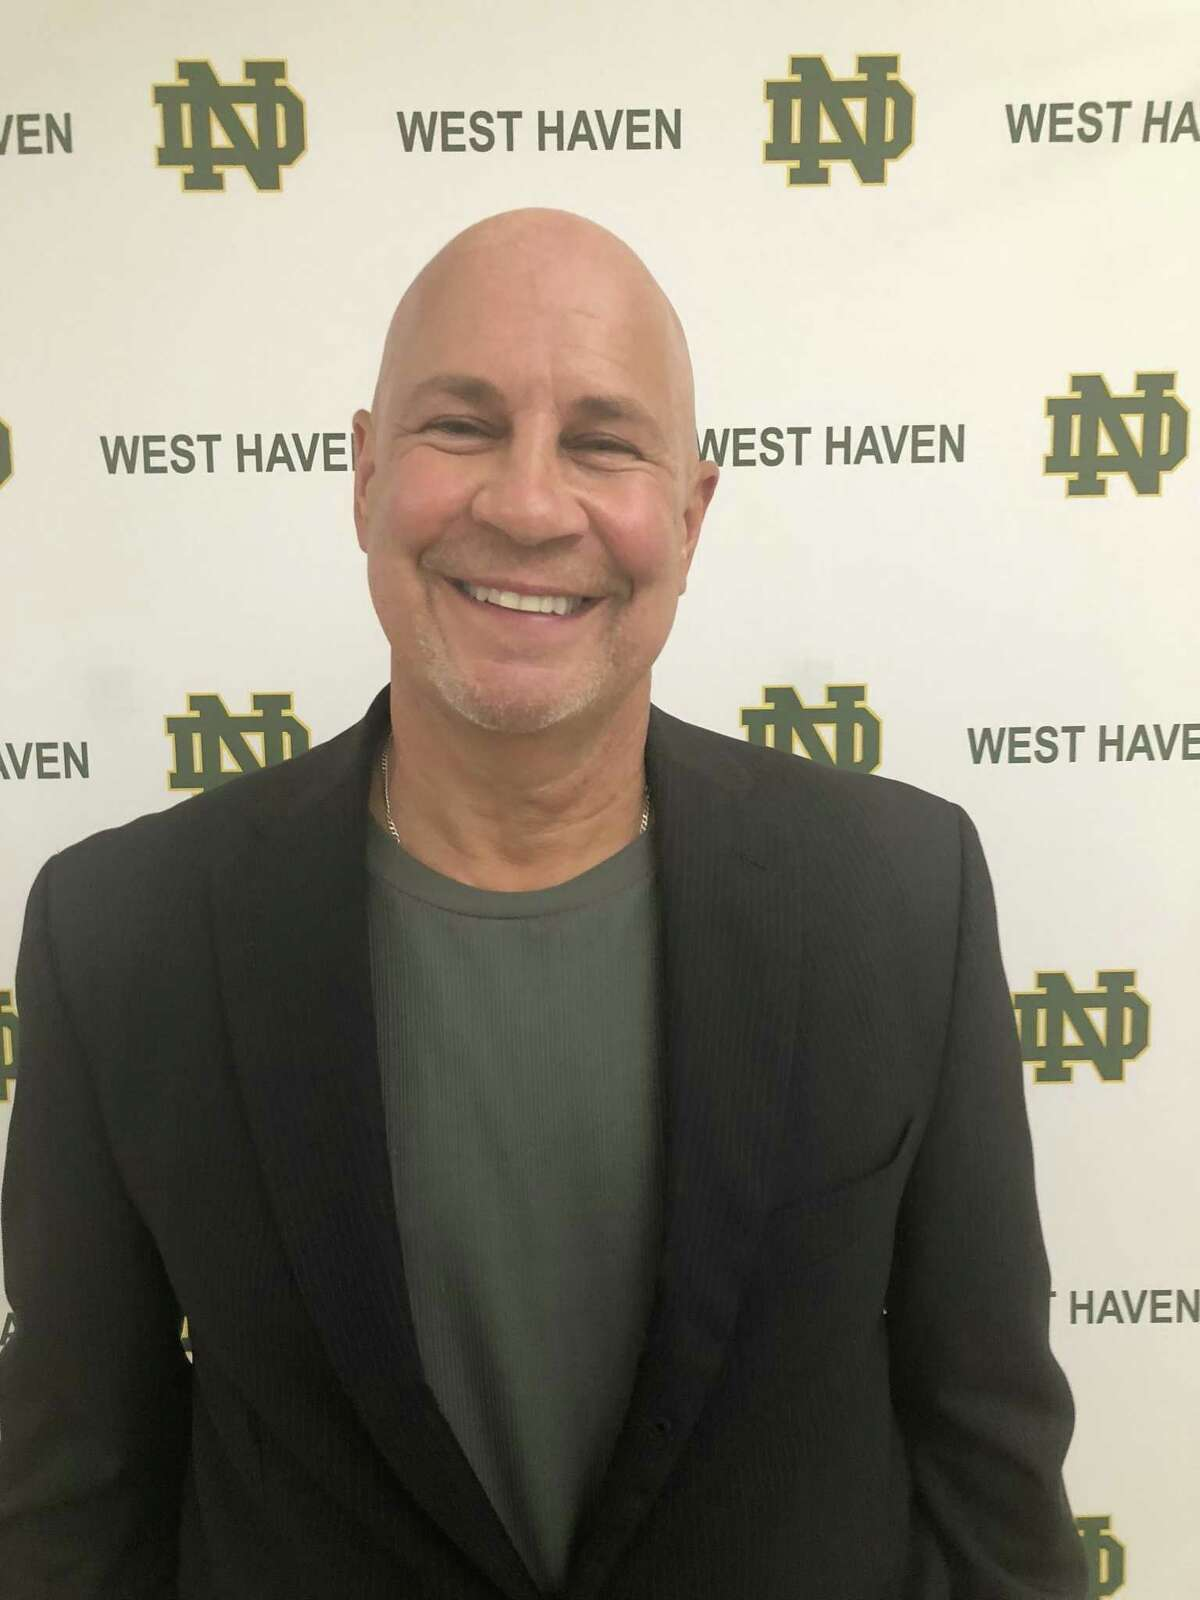 Larry Vieira, who has coached the New Fairfield/Immaculate co-op team the past six seasons, was named the new Notre Dame-West Haven boys hockey coach on Monday.